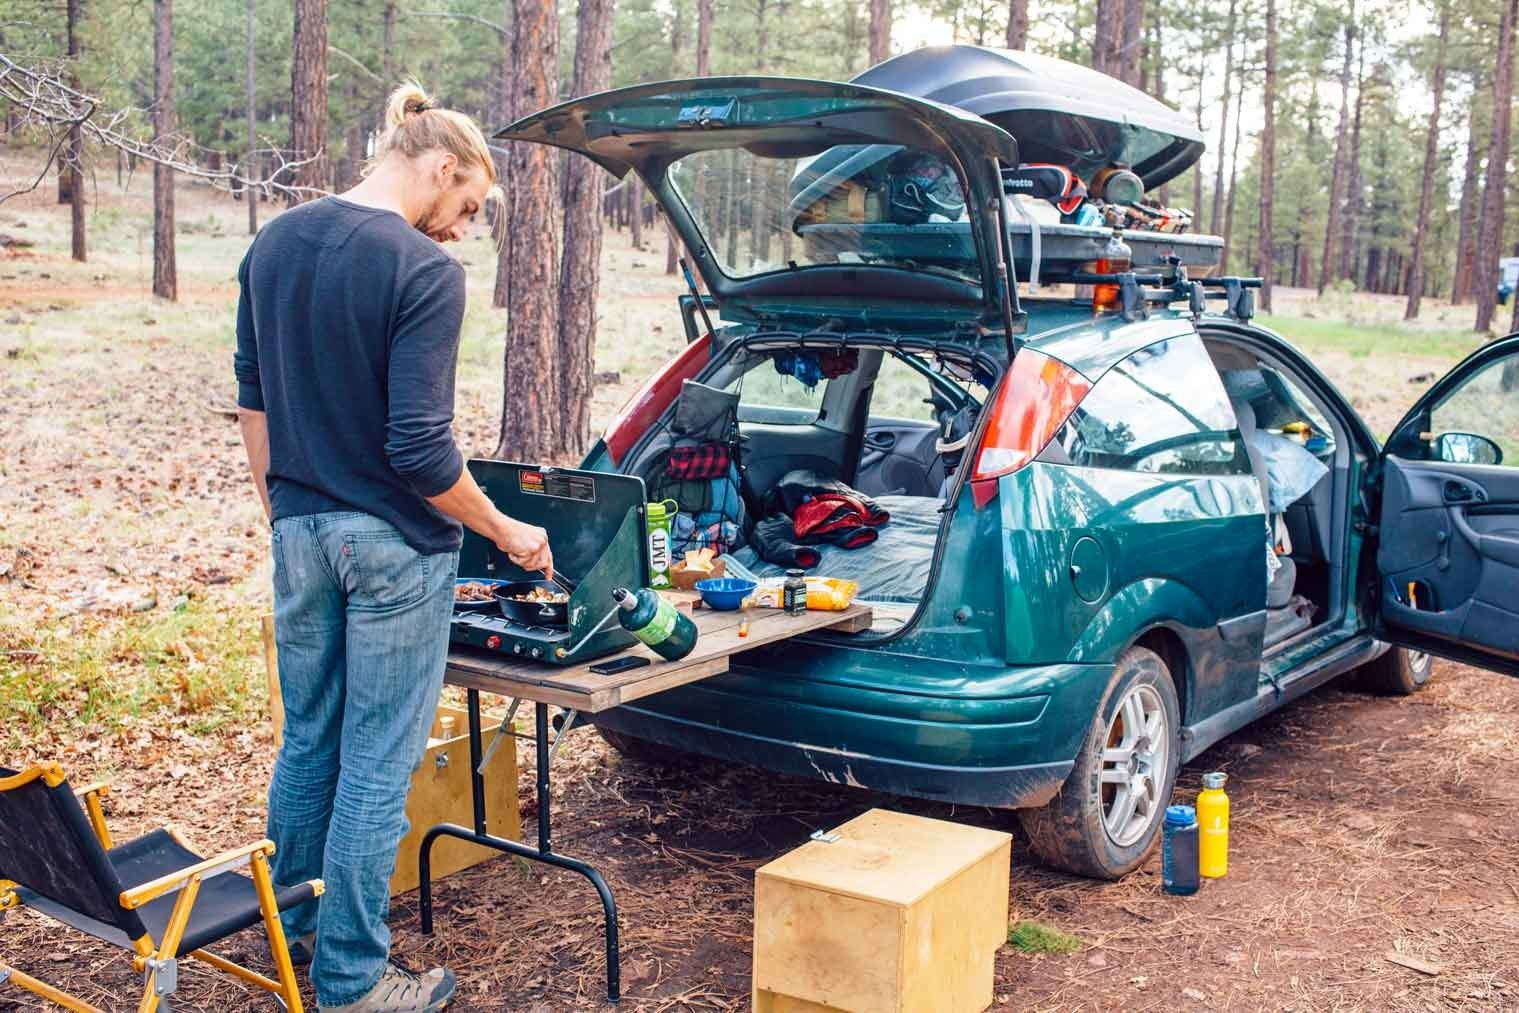 Superior Balance A Foldable Camping Table On Your Bumper To Create A Kitchen In A  Small Campsite.